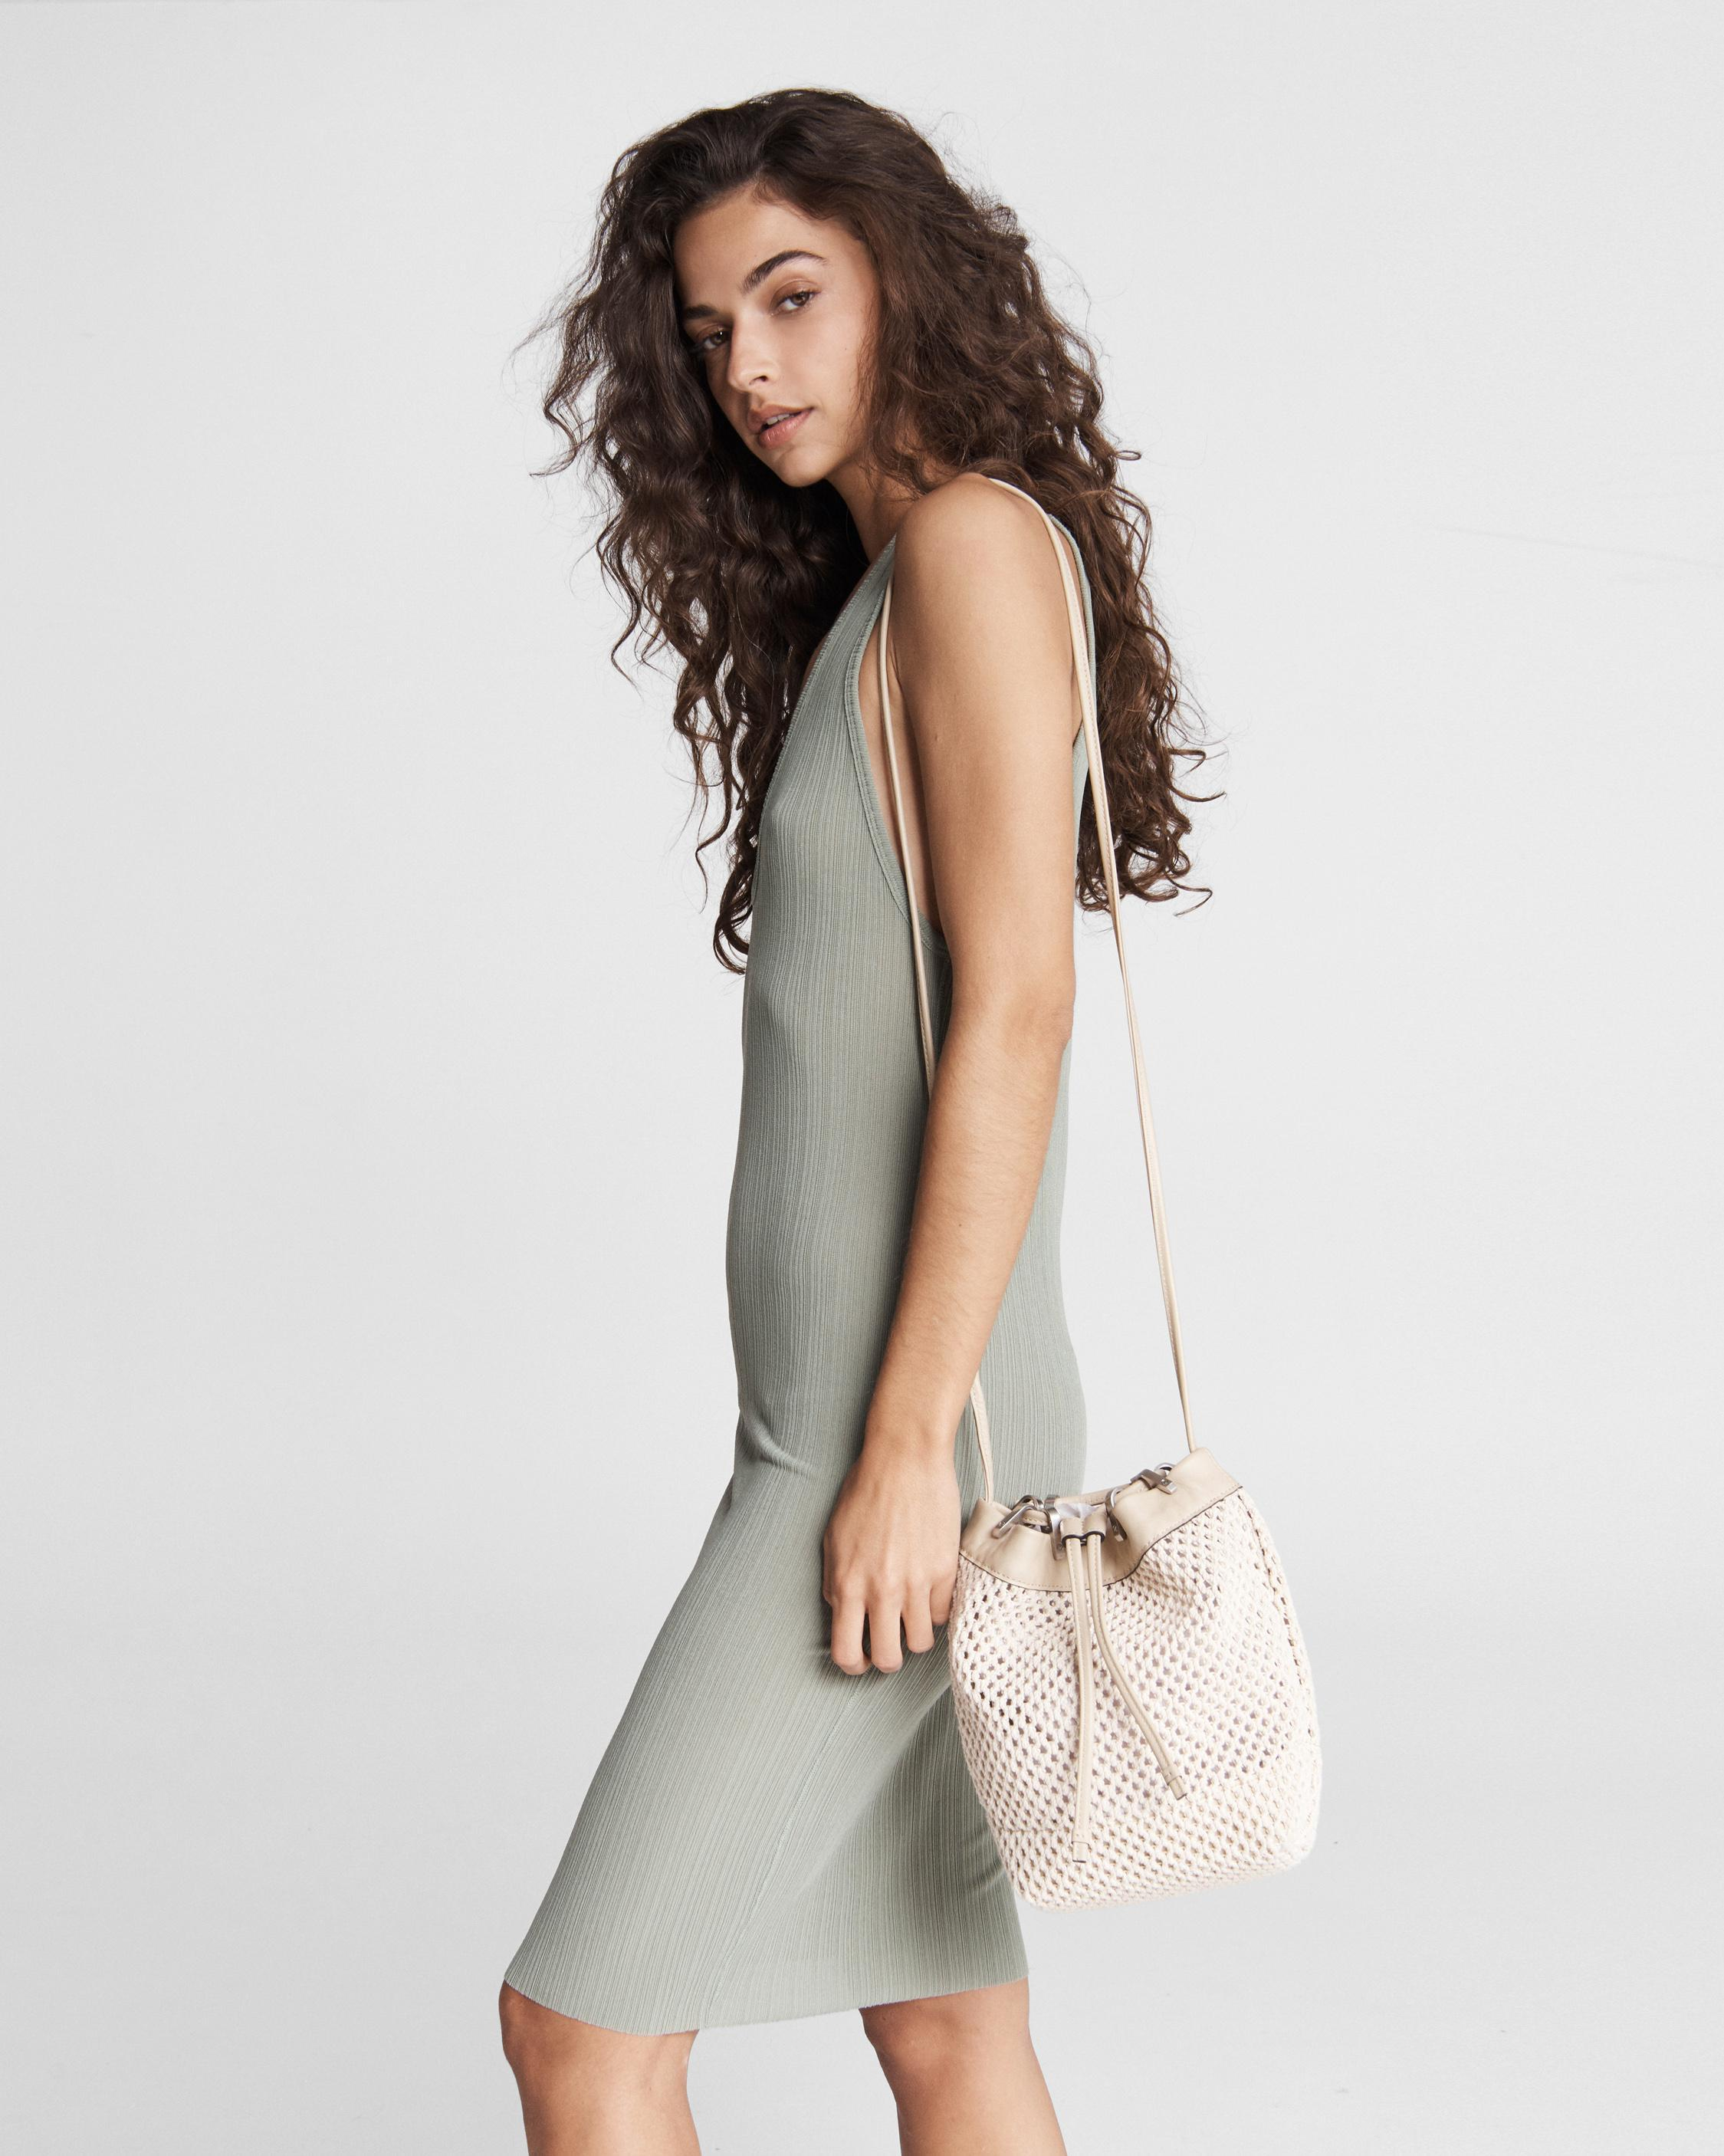 Summer dayton drawstring bag - leather and recycled materials 3